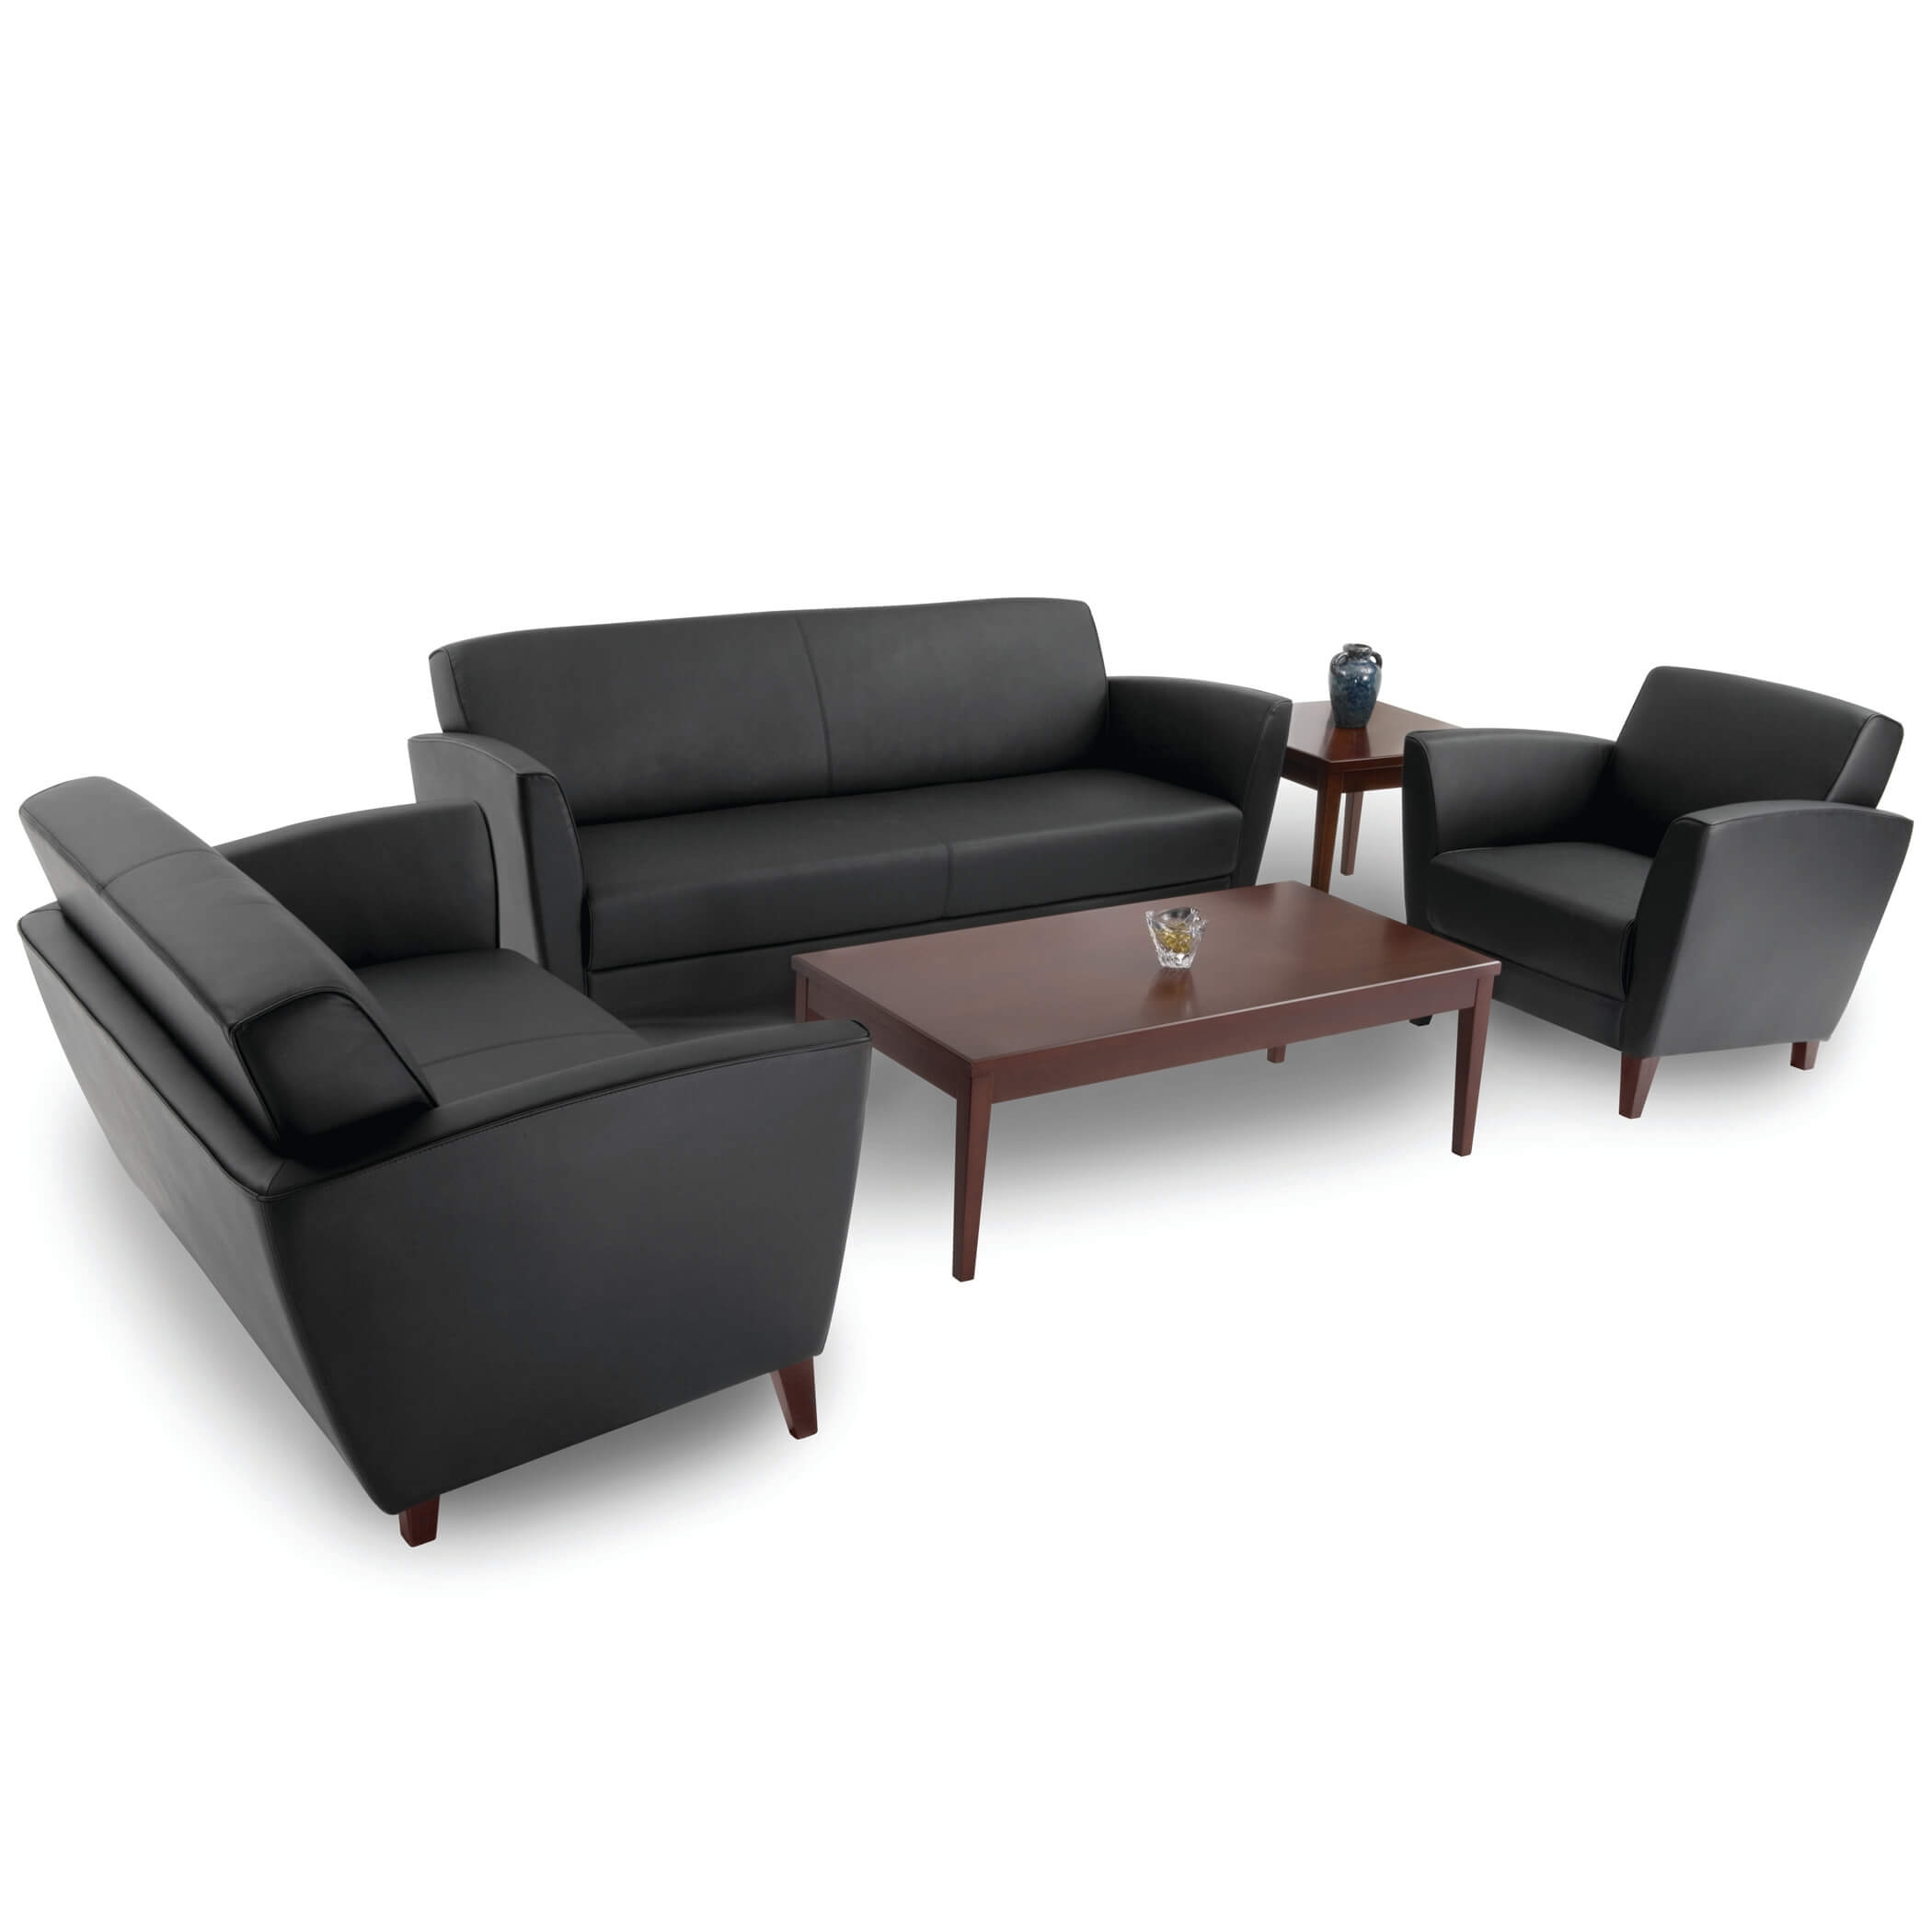 Office furniture couch environmental